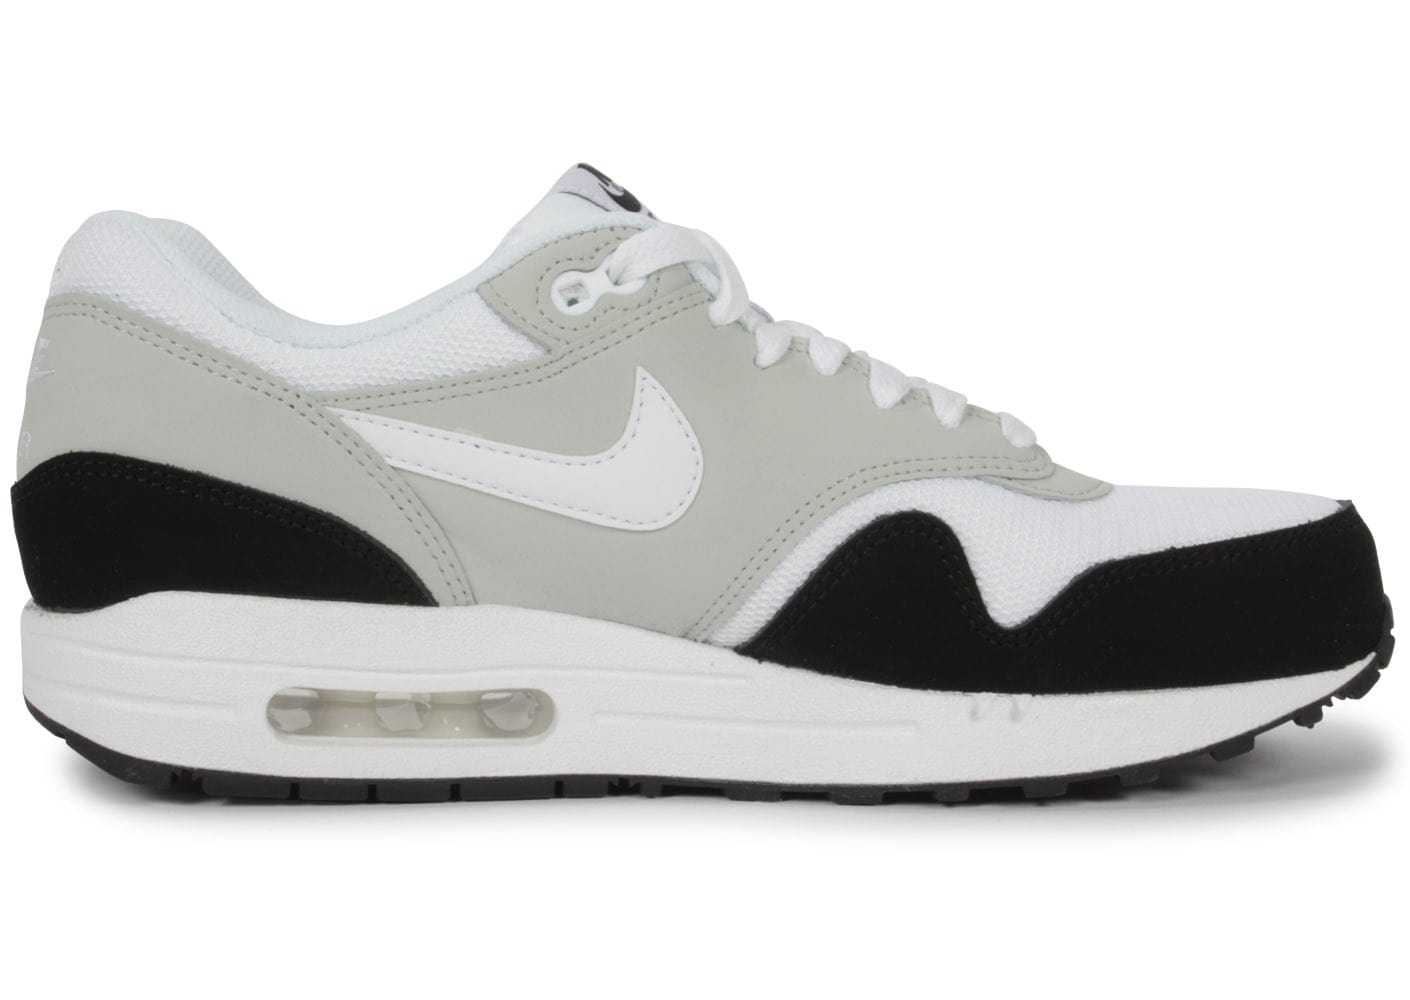 nike air max 1 blanche nike gros nfl jerseys. Black Bedroom Furniture Sets. Home Design Ideas